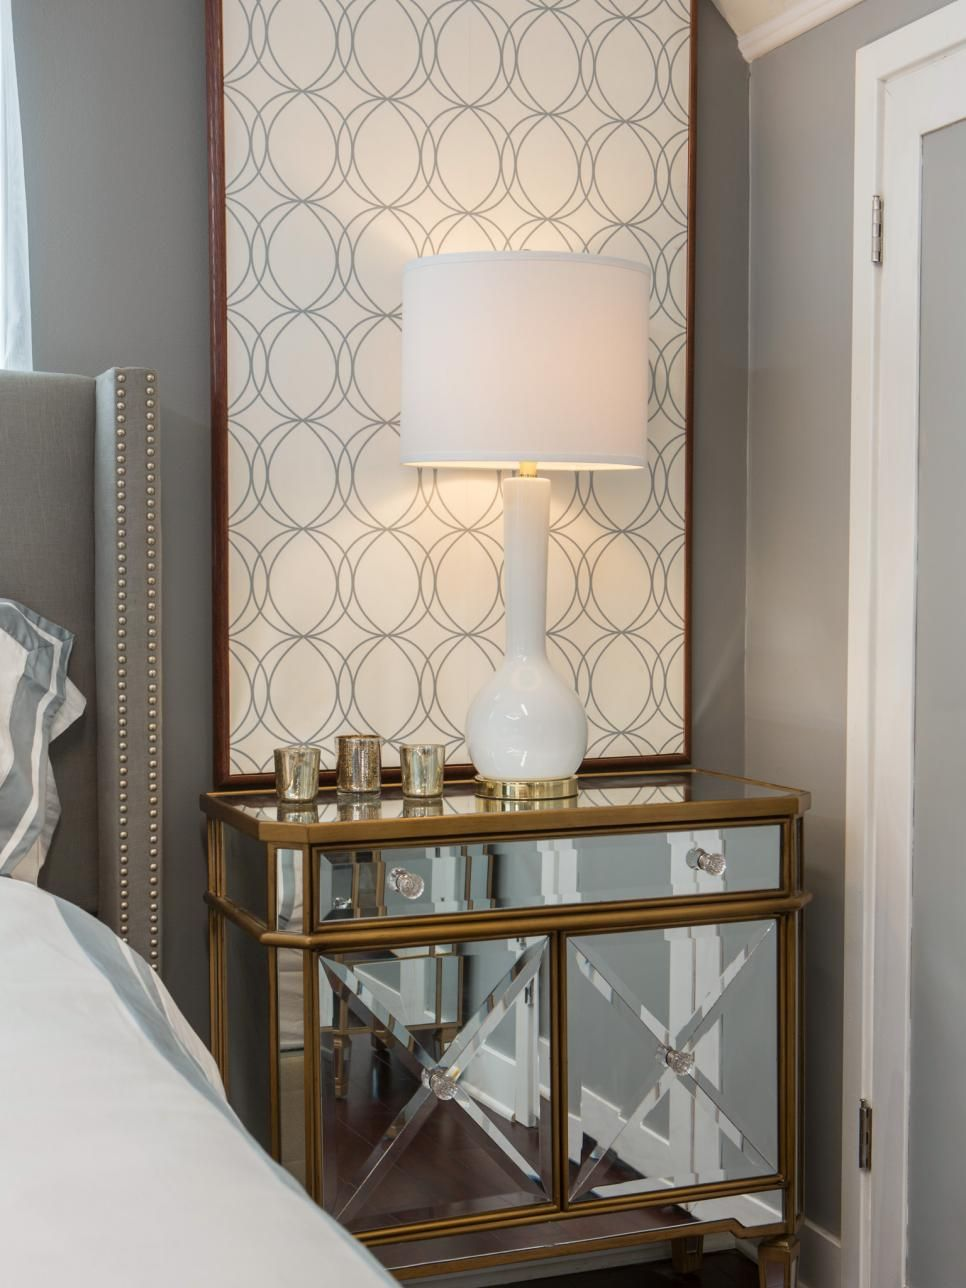 A mirrored night stand and oversized wall art accent this modern